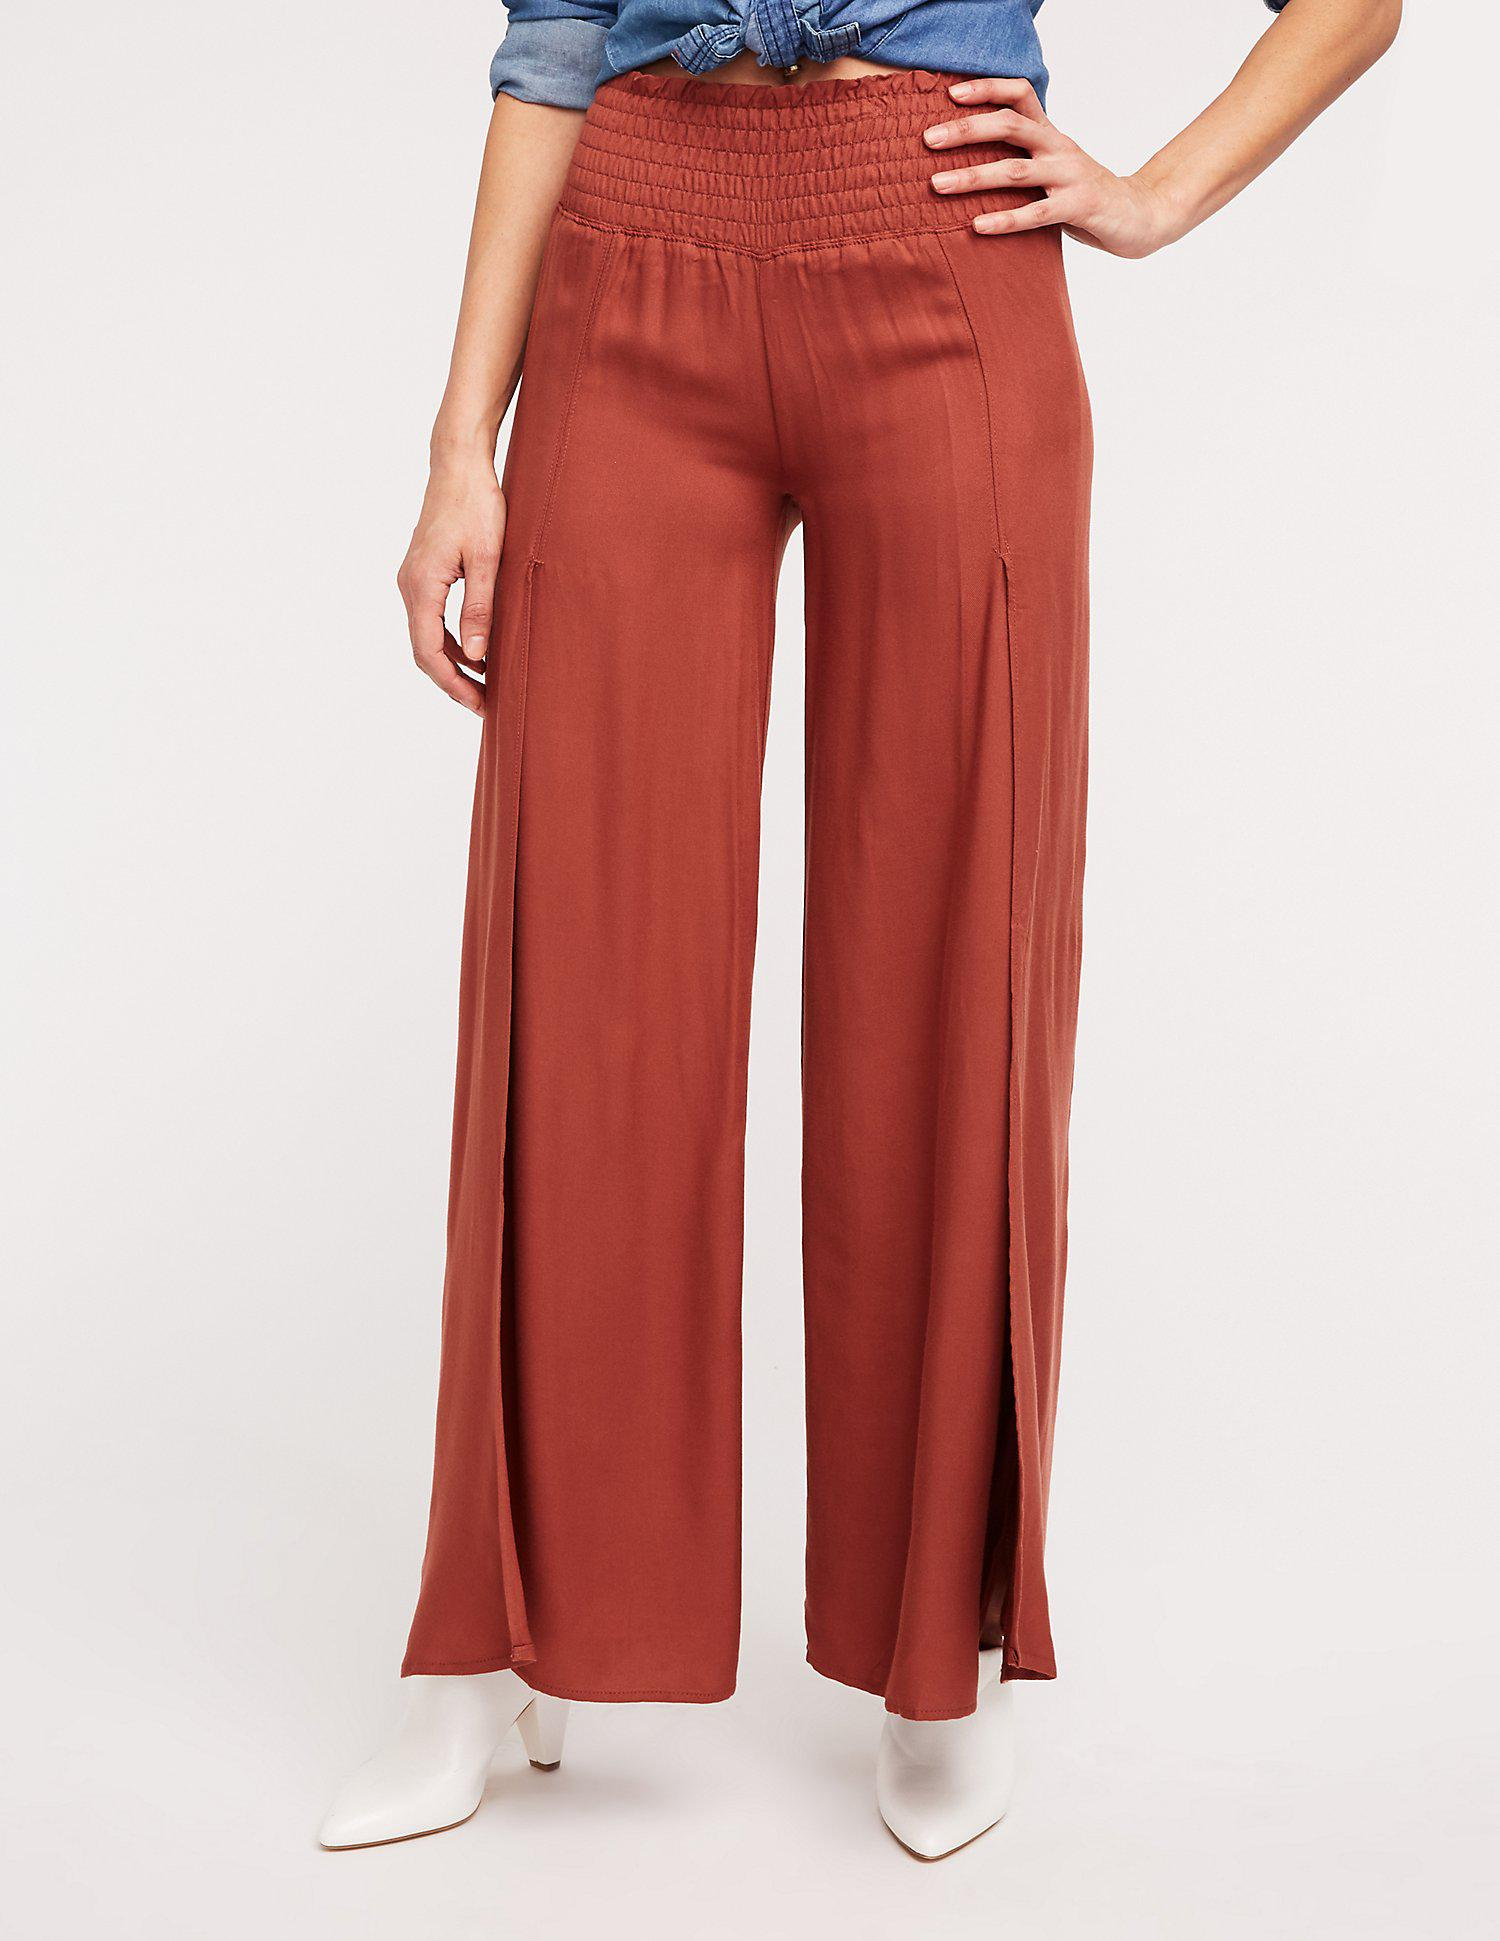 32c158408fa20 Lyst - Charlotte Russe Smocked Split Leg Palazzo Pants in Red